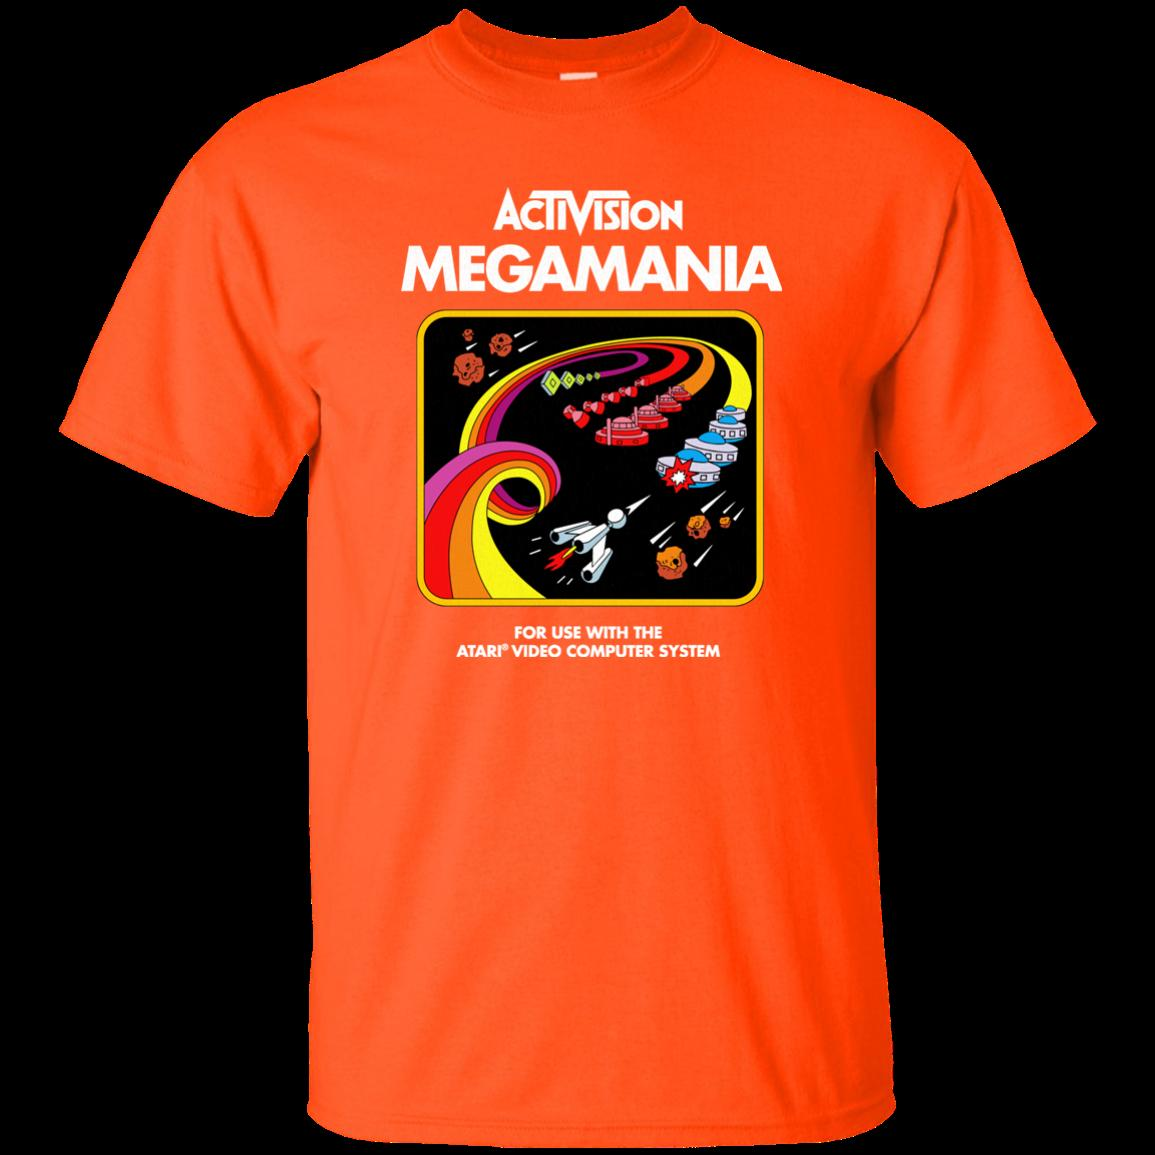 Megamania, Activision, Cartridge, Game, Atari, 2600, 2900, Retro, Video, Game, Funny free shipping Unisex Casual tee gift